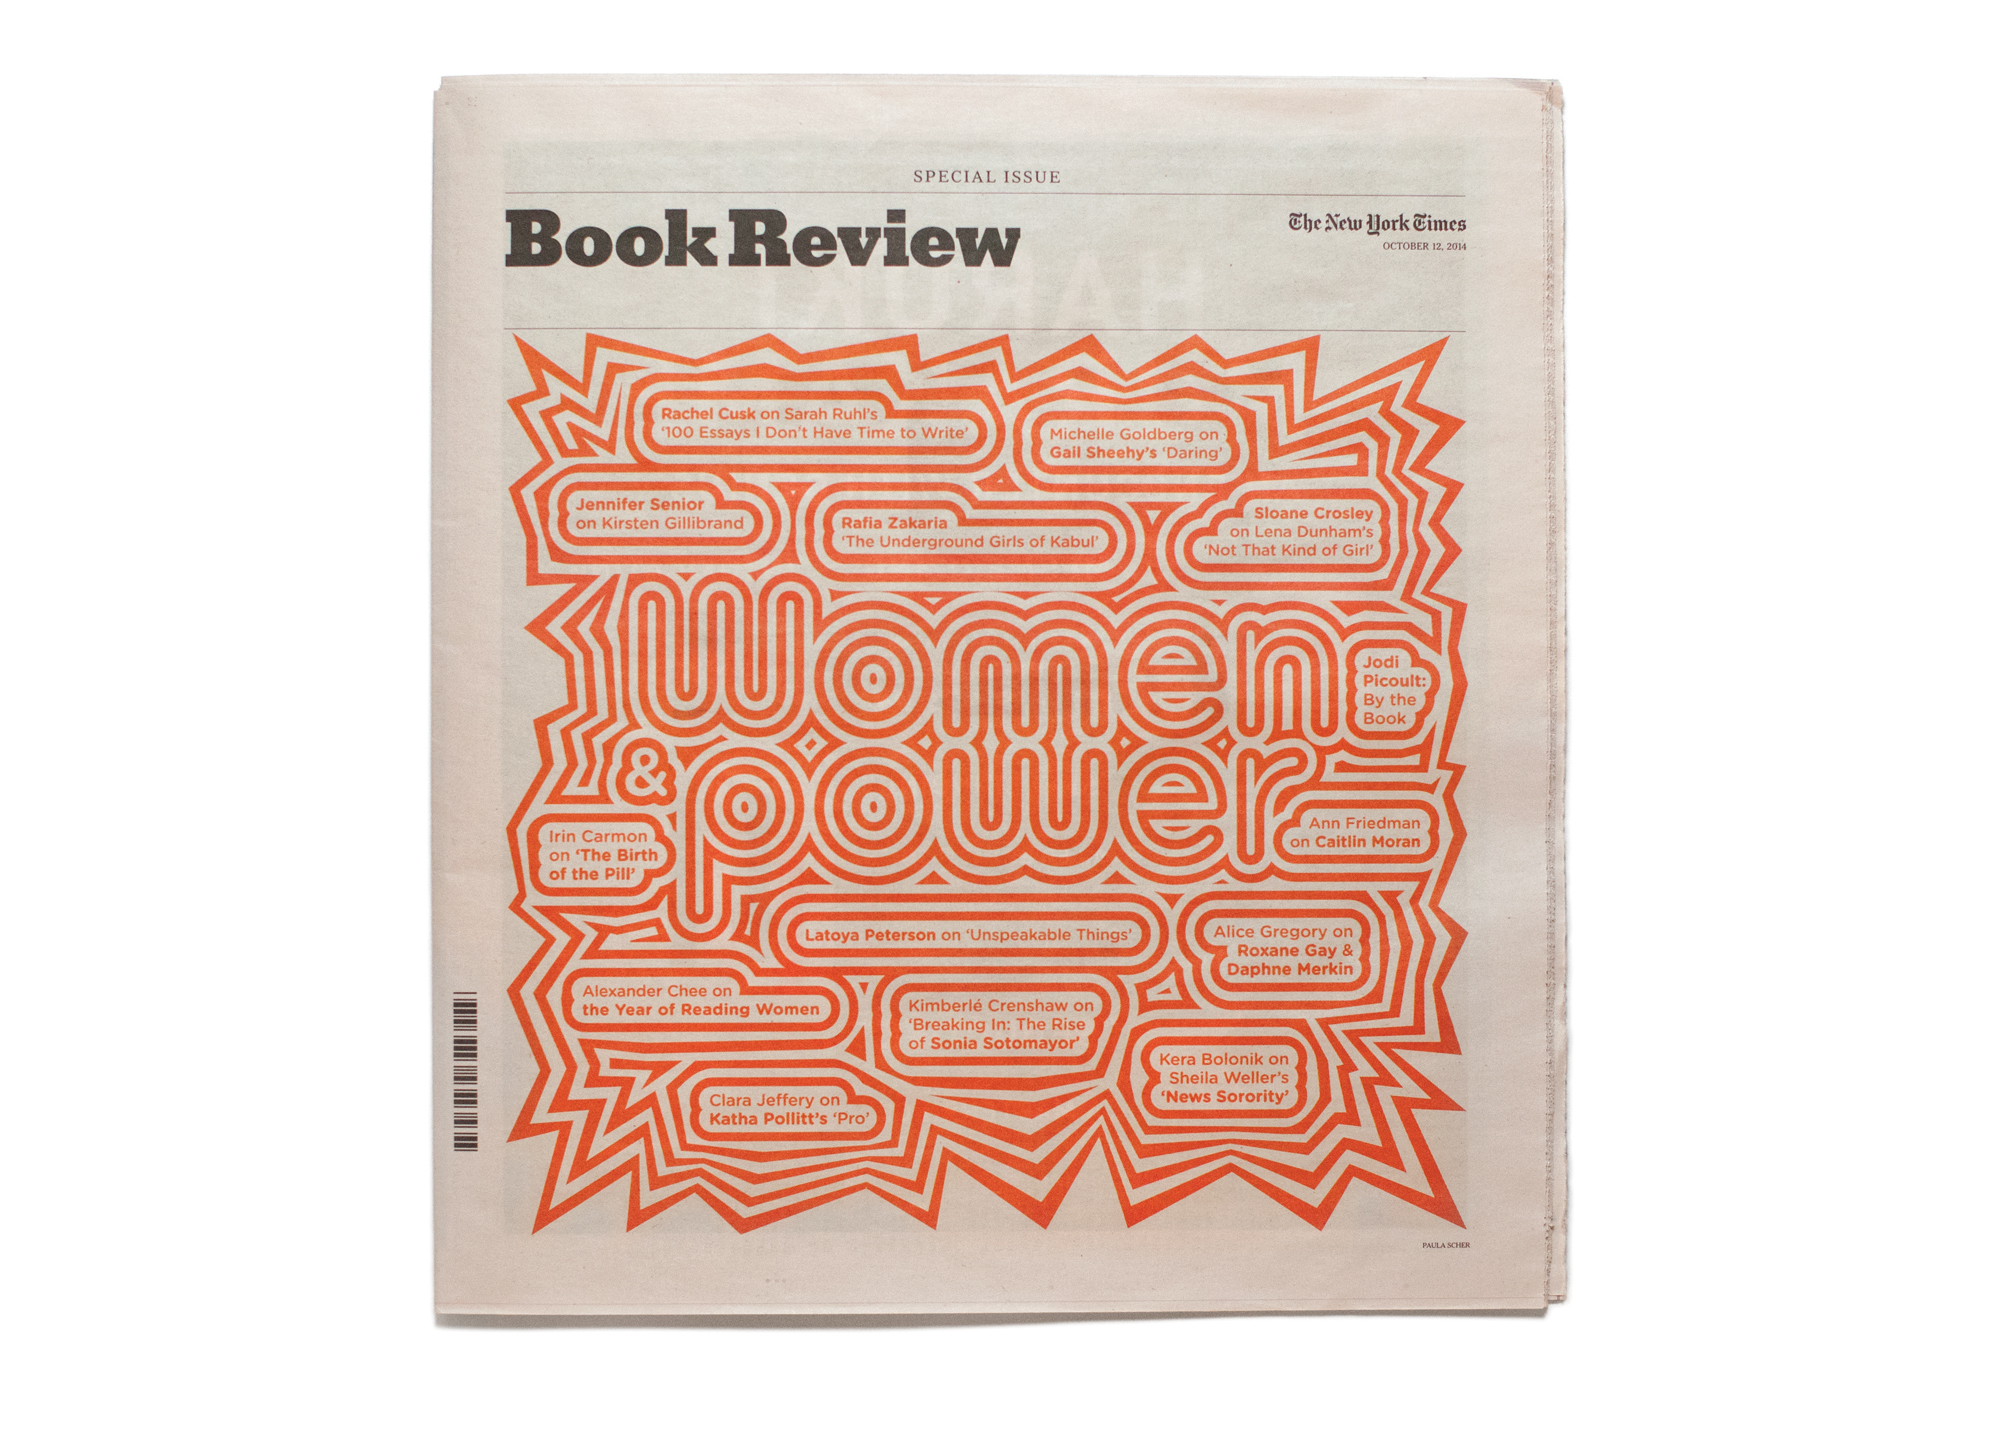 Cover image: The New York Times Book Review (2014)